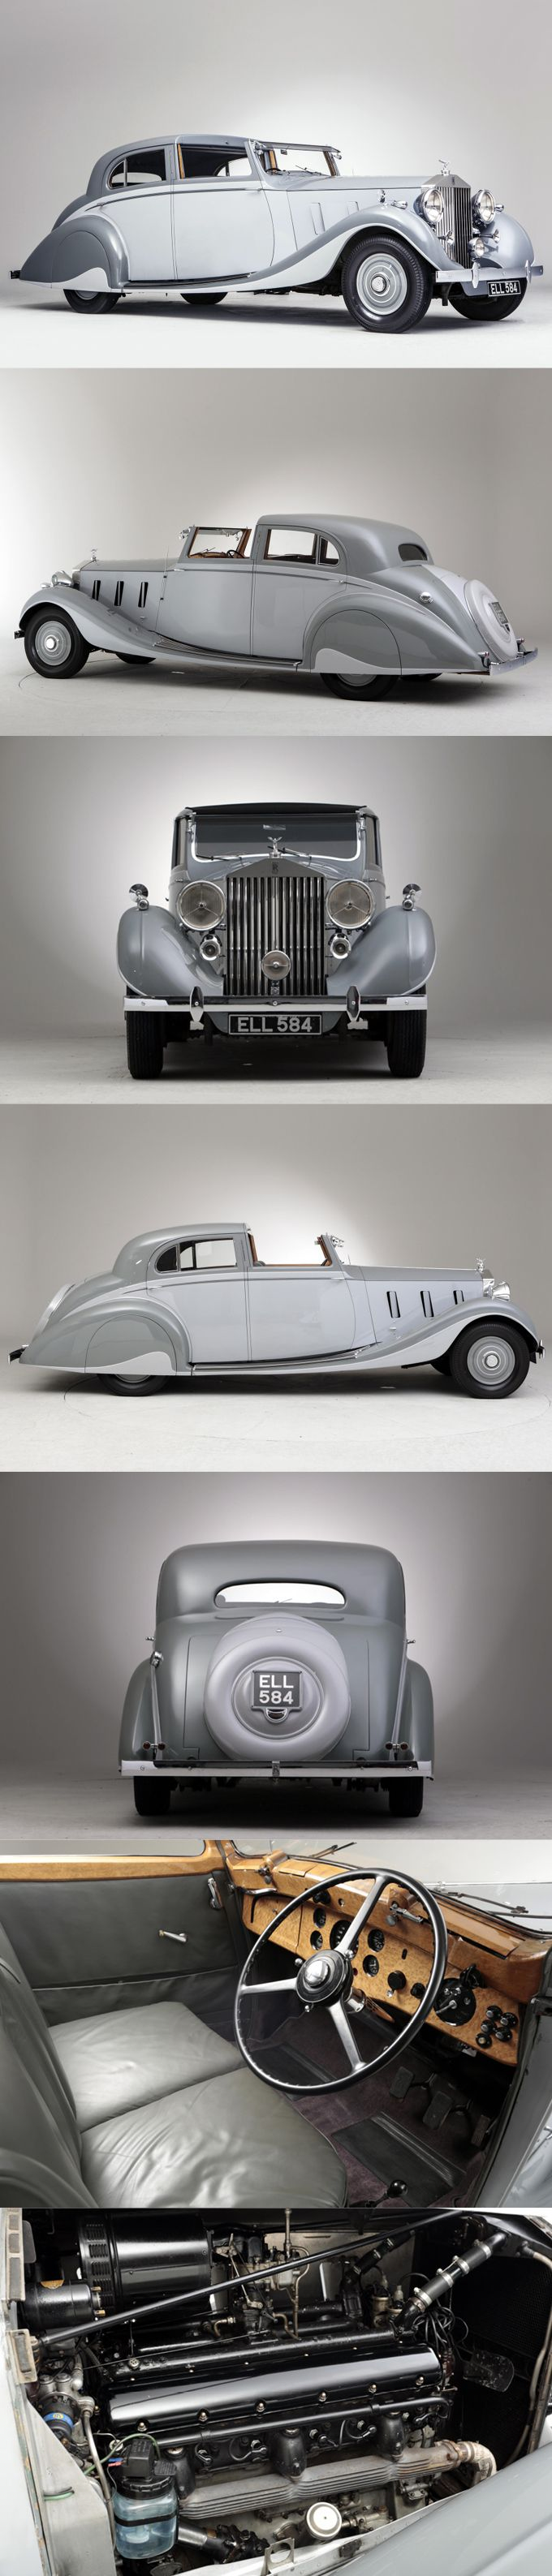 1937 Rolls-Royce Phantom III Gurney Nutting Sports Sedanca de Ville / UK / grey silver